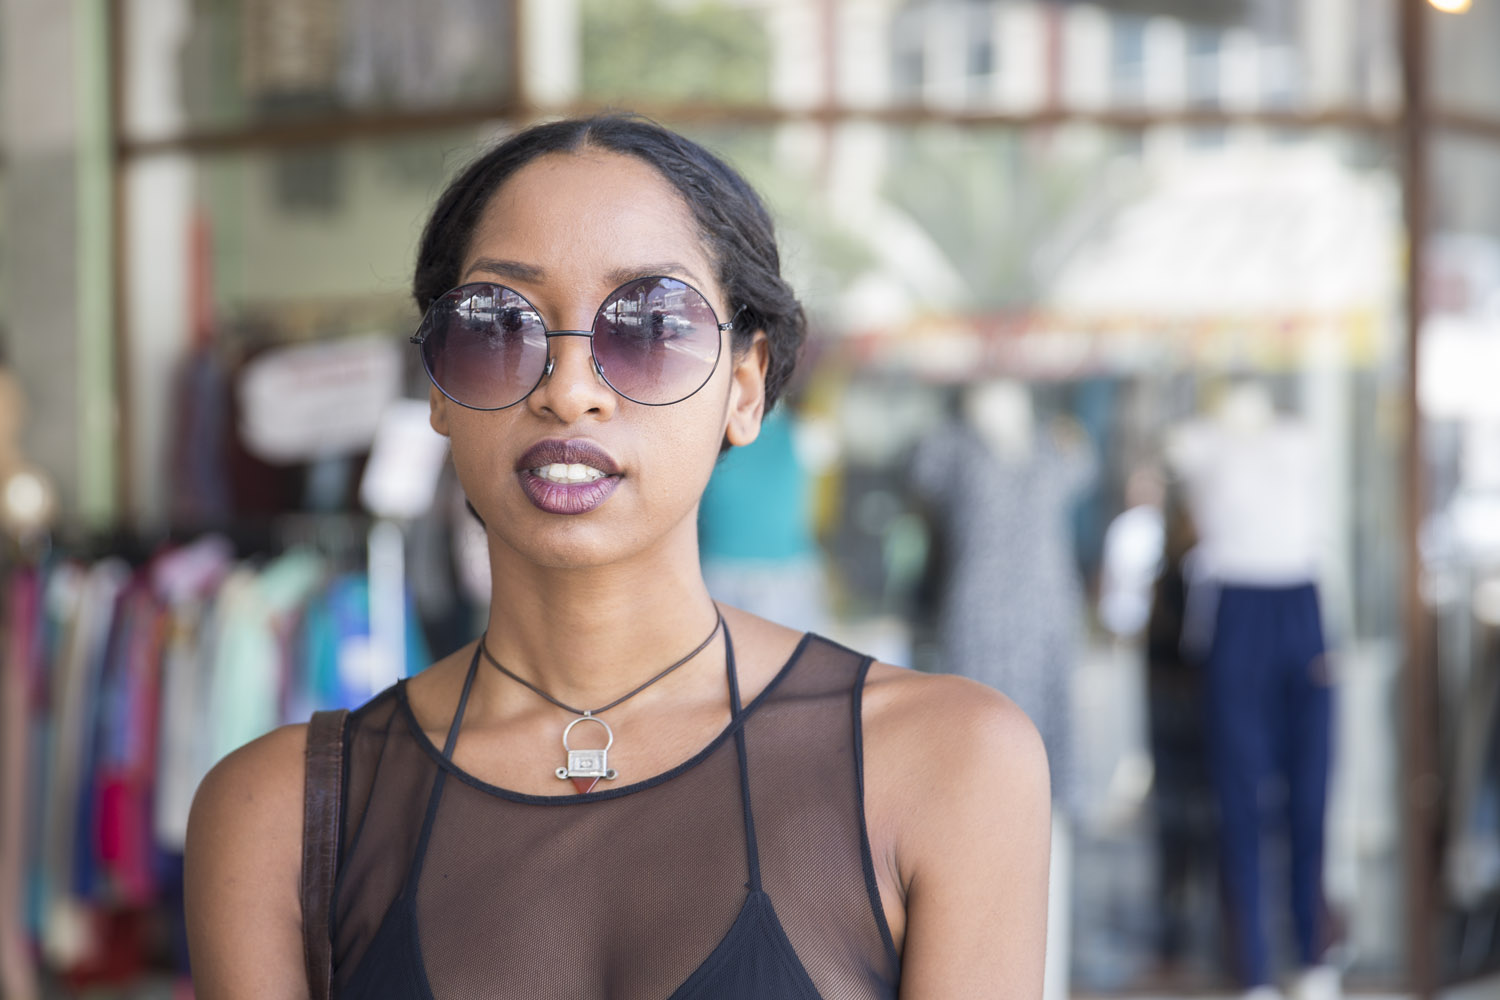 Bianca wears a thrifted outfit and a necklace from South Africa.